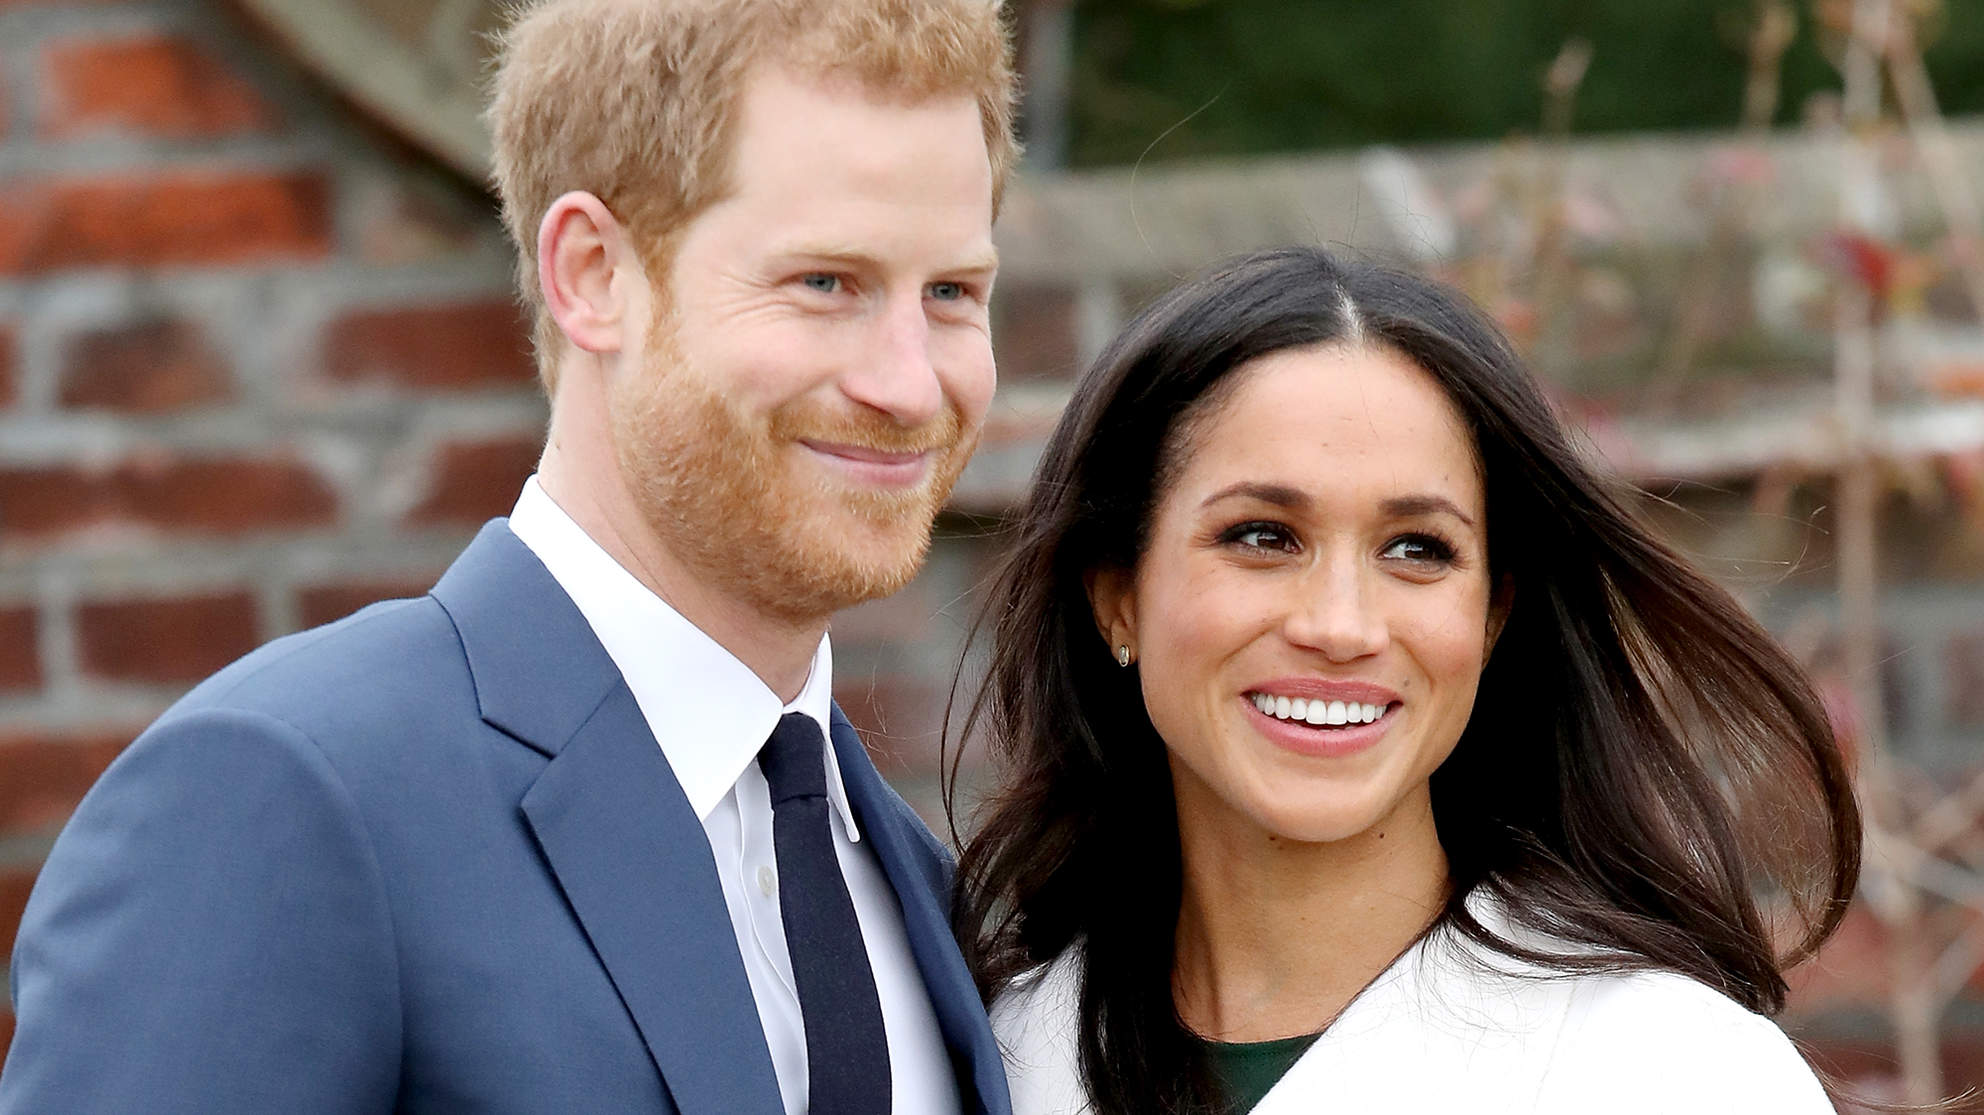 The Sweet Reason Why Prince Harry and Meghan Markle Want a Banana Wedding Cake